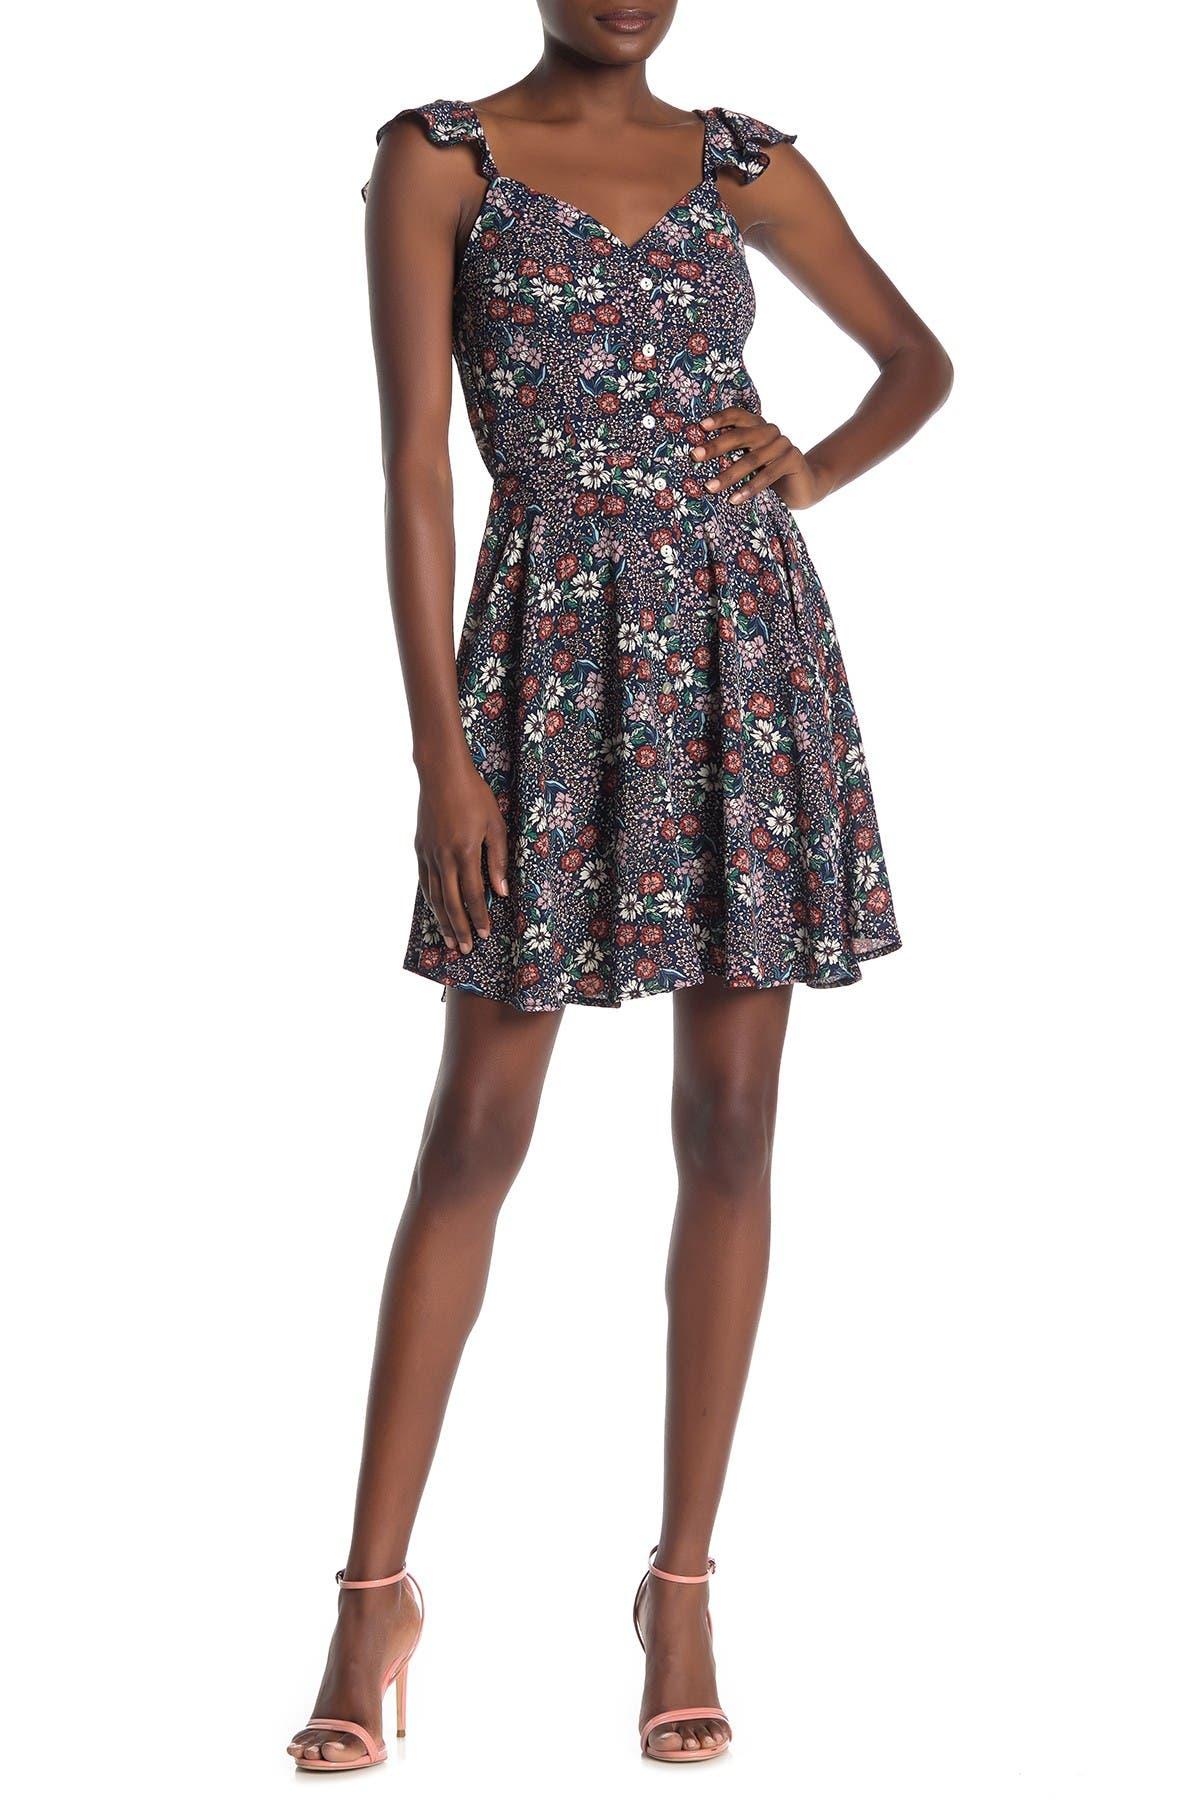 Image of BAILEY BLUE Ditsy Floral Mini Dress